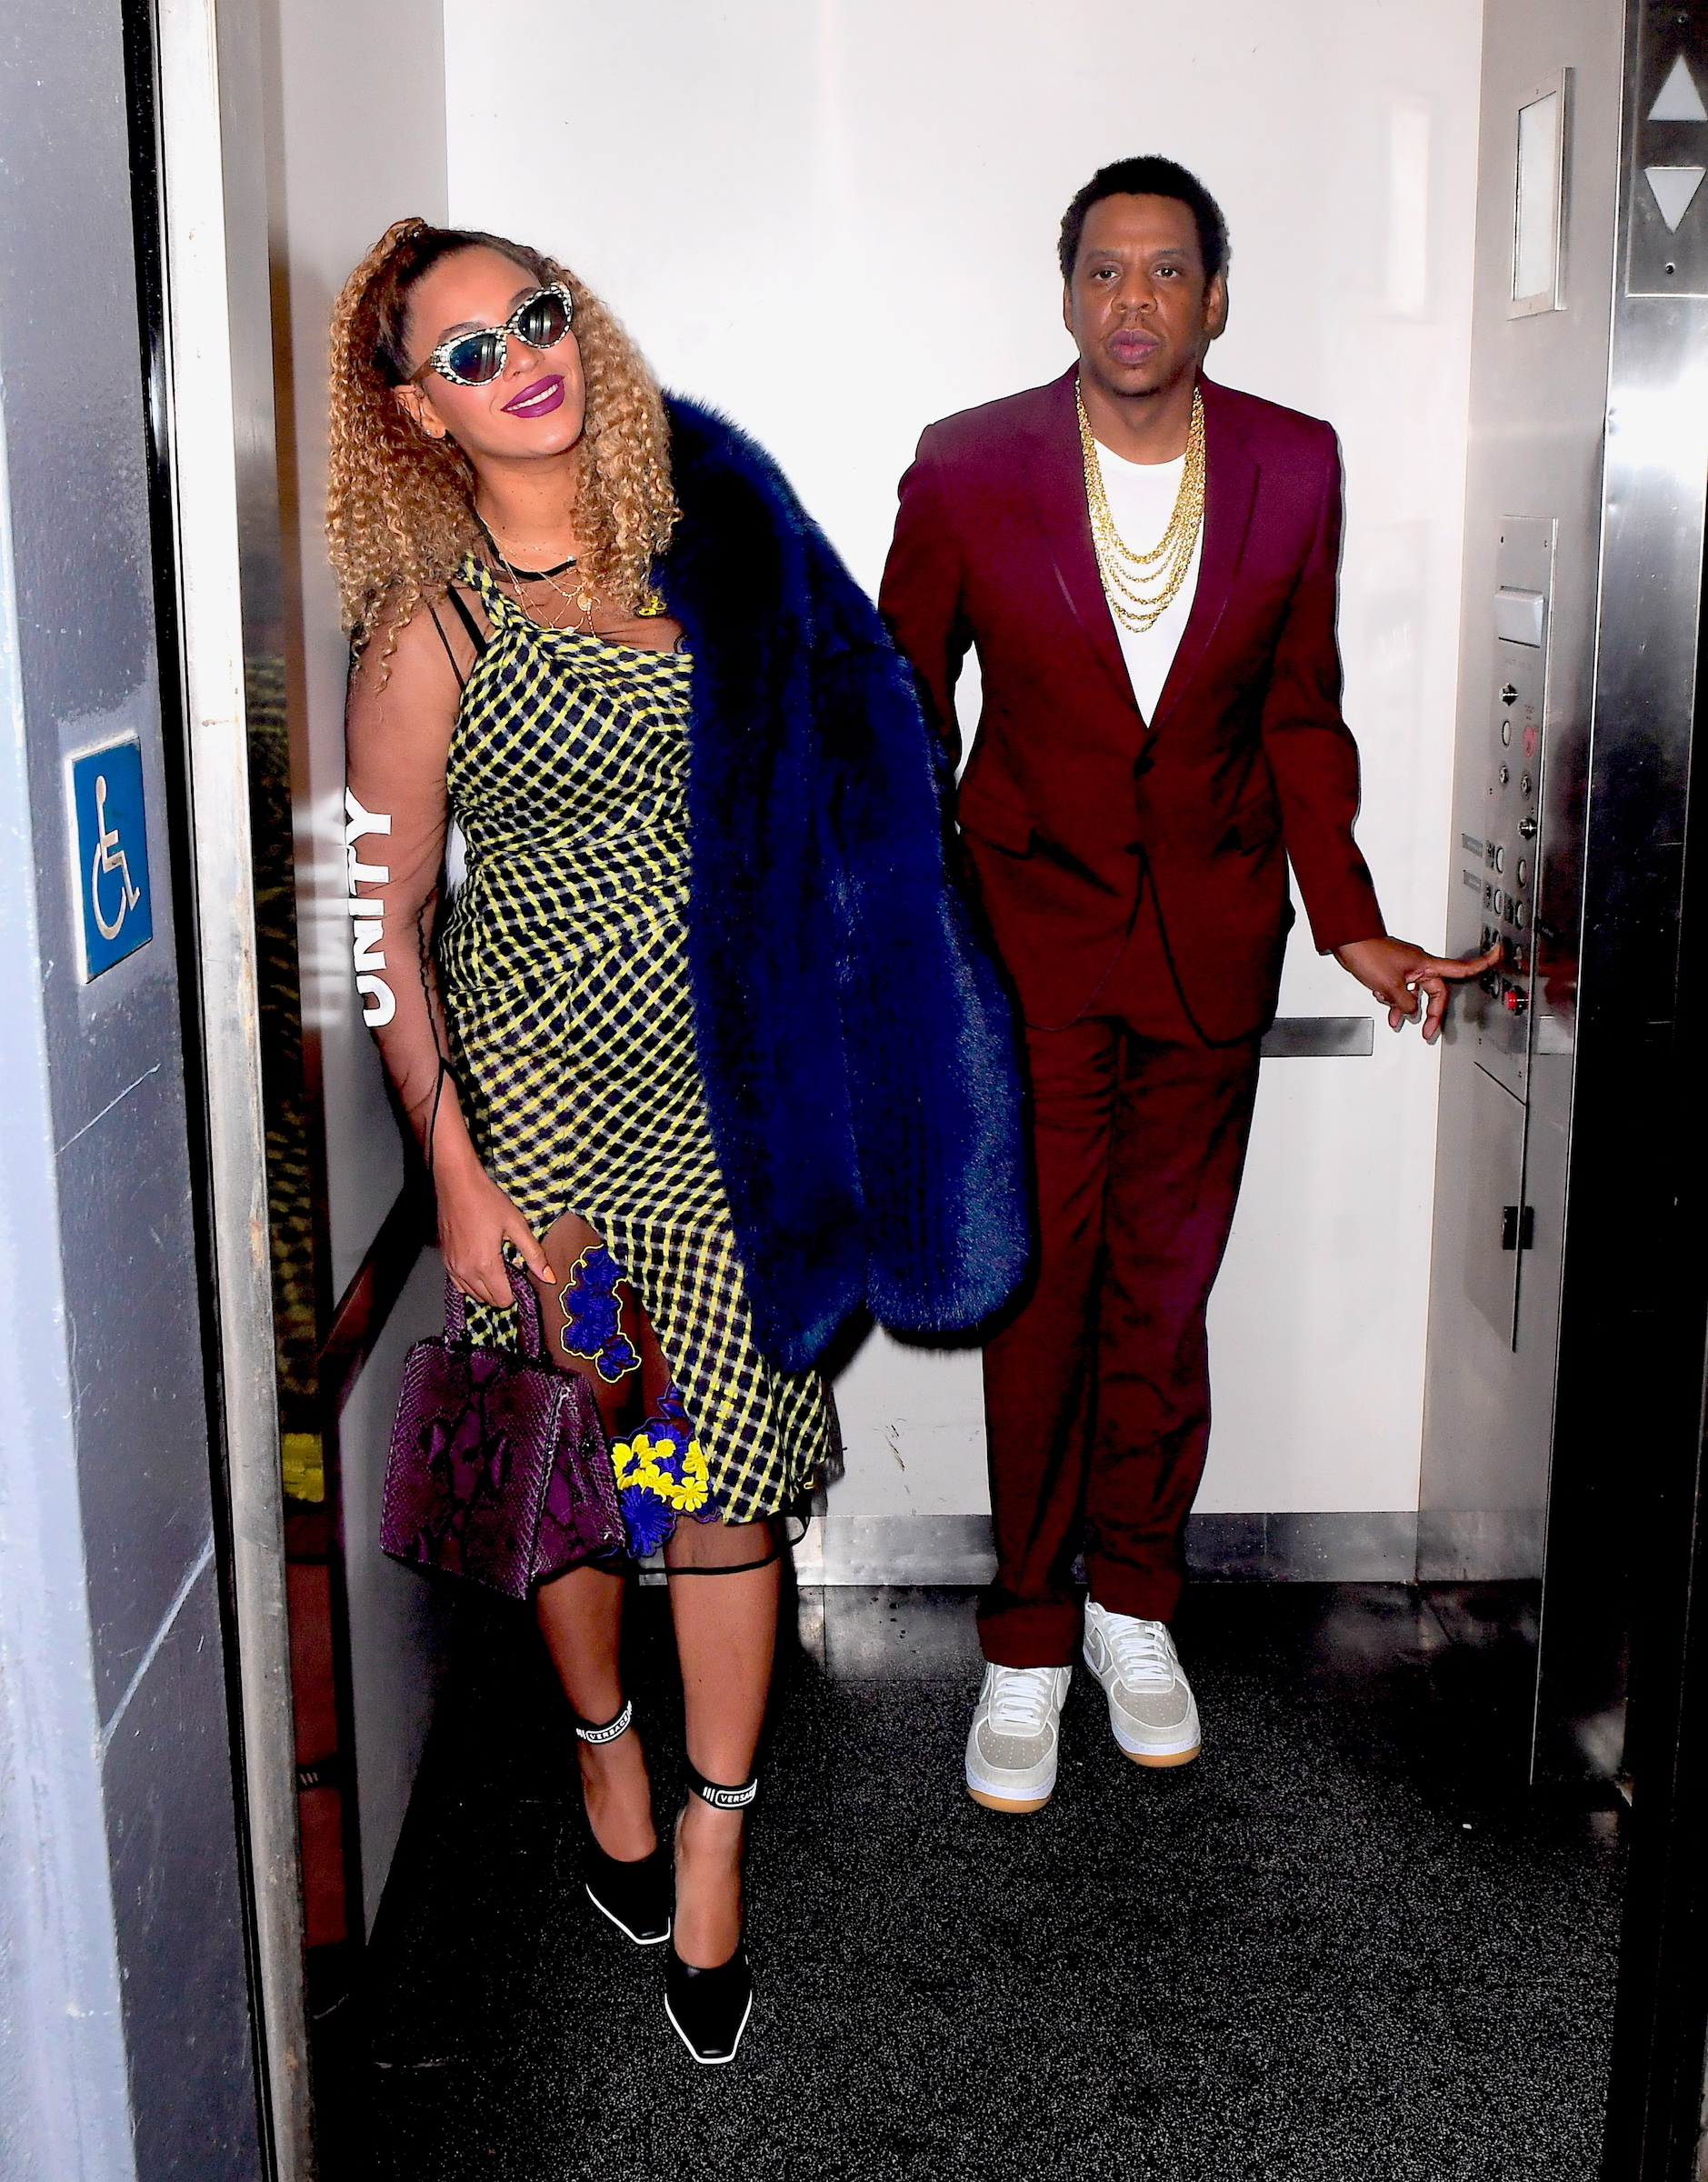 Beyonce and Jay Z Pose in Elevator